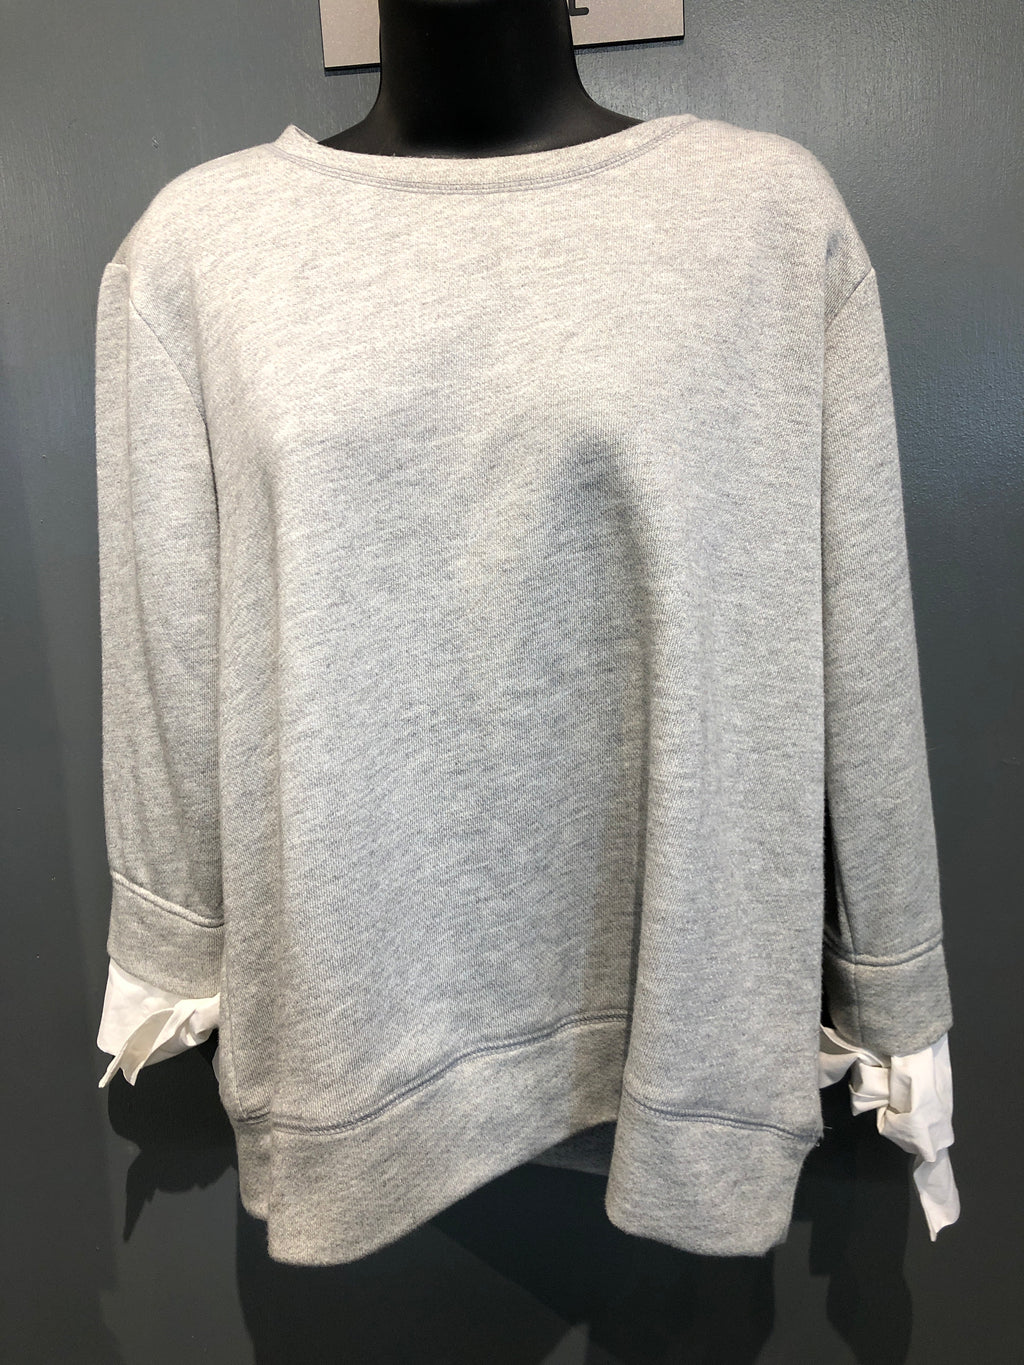 Grey Crew Neck Sweatshirt Size Medium